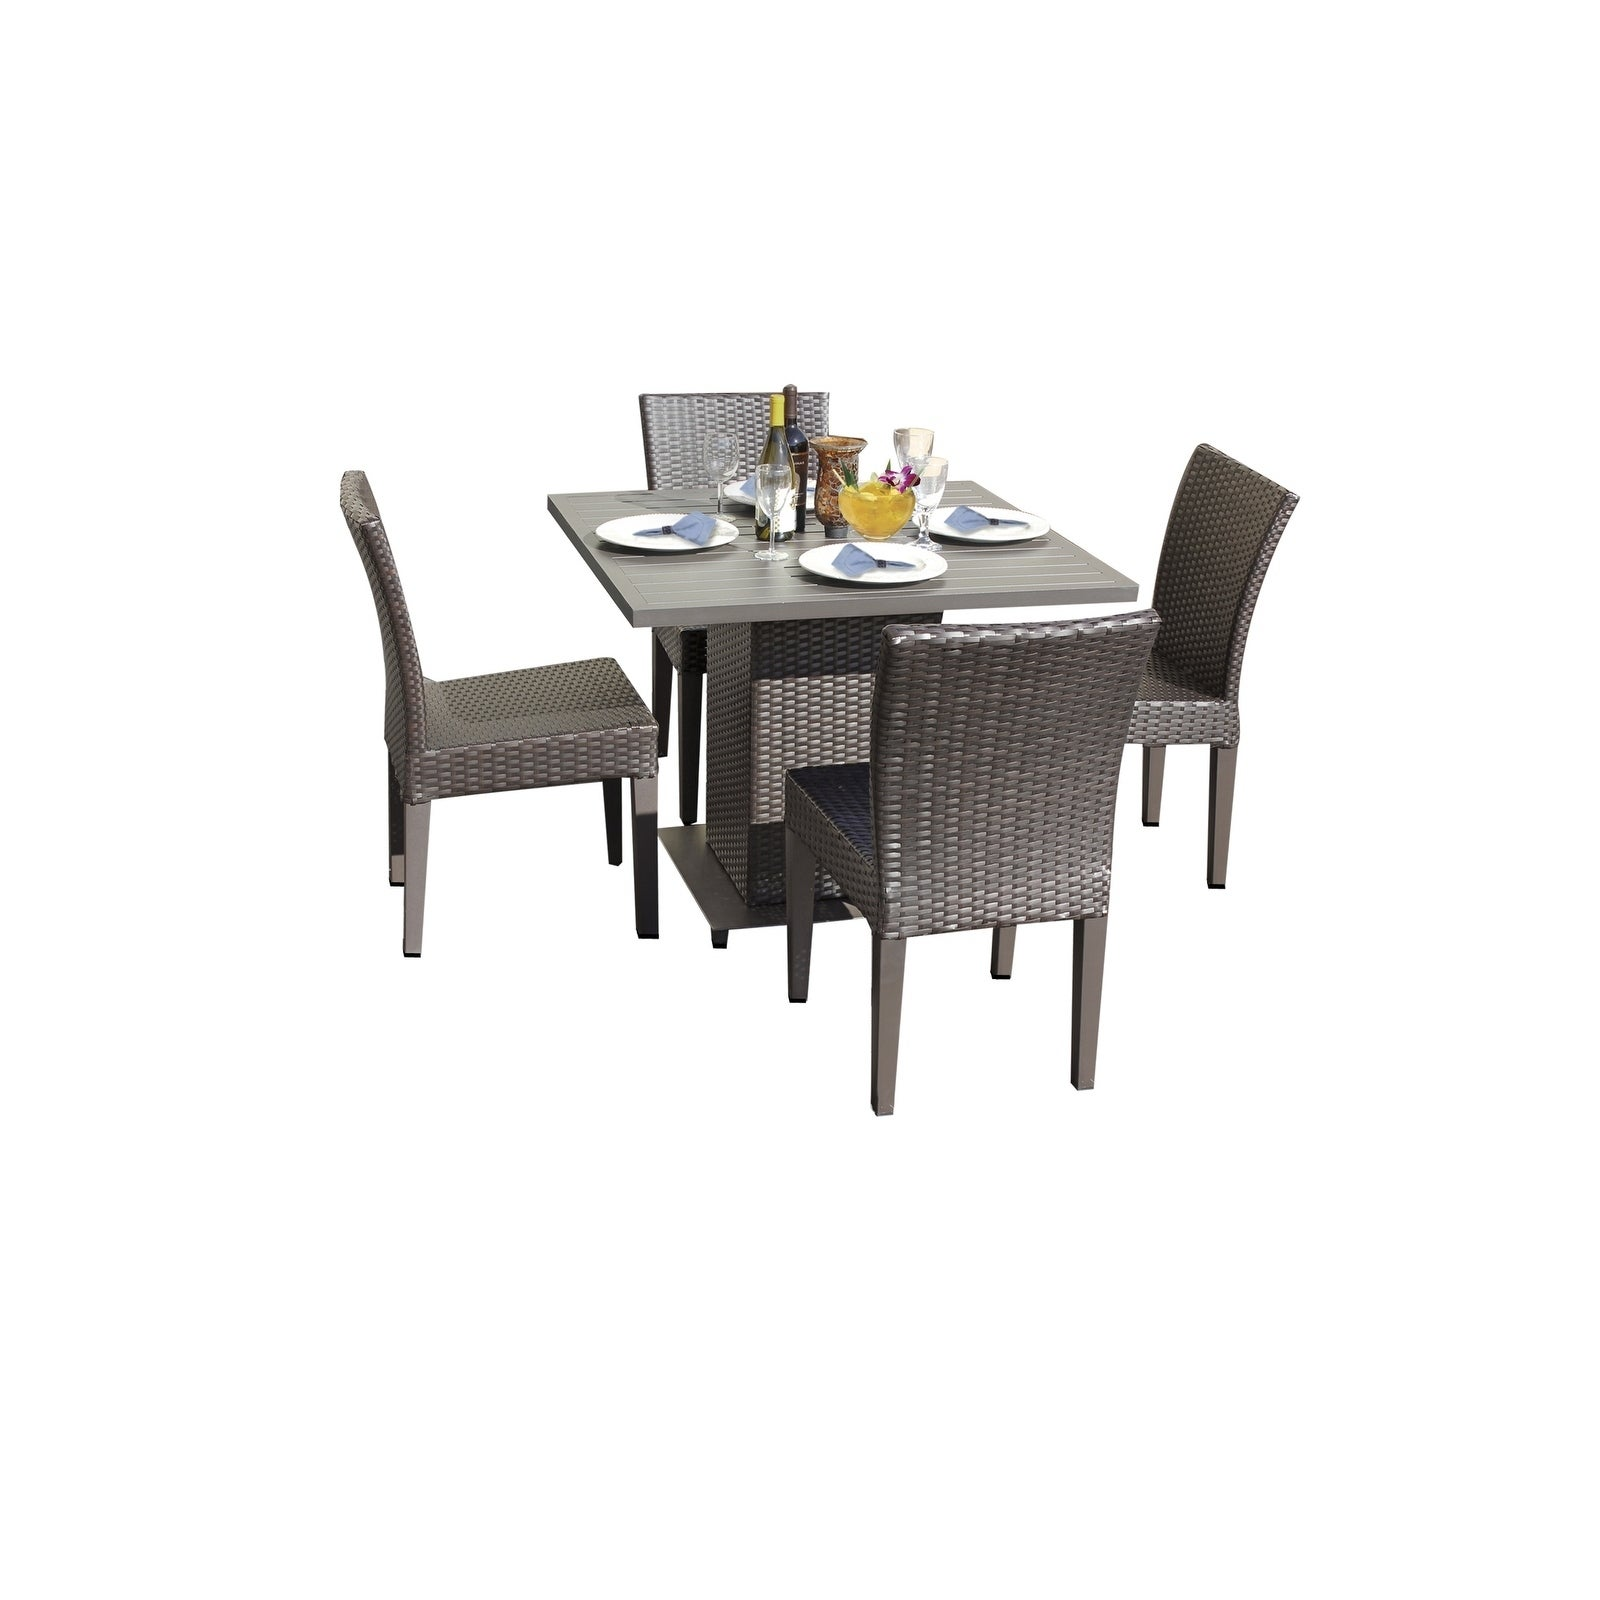 Shop Barbados Square Dining Table With 4 Chairs Overstock 28945302